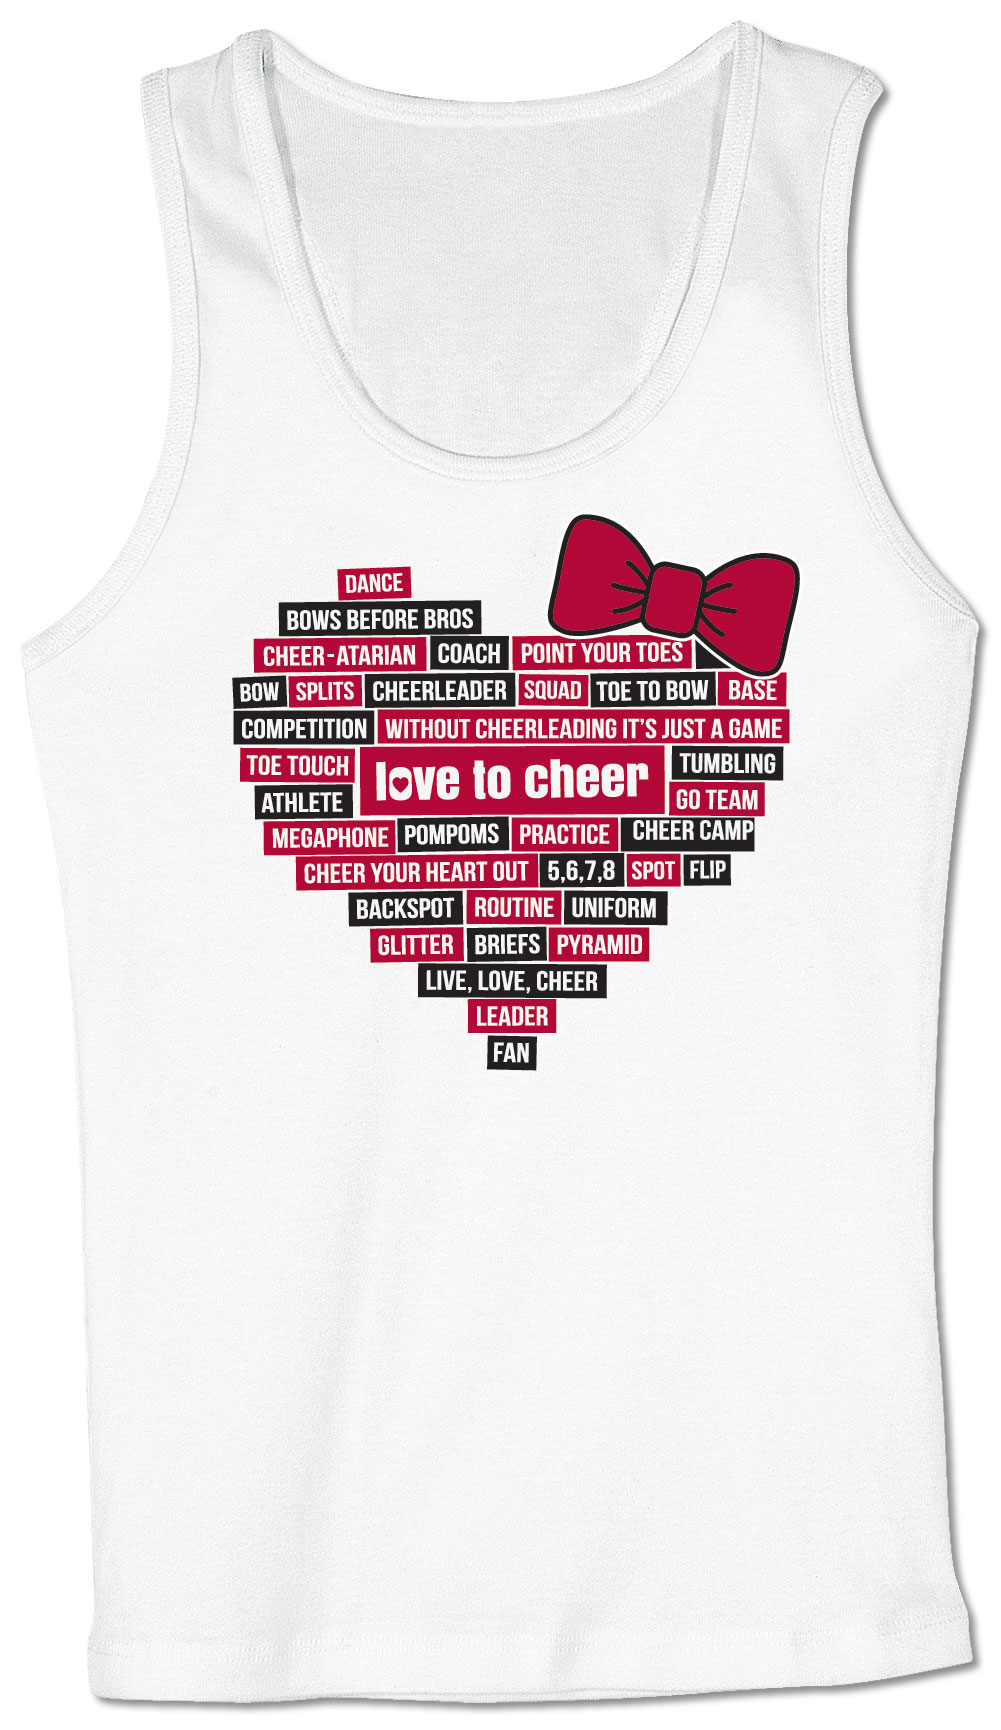 5abe9a6c7362 Chass   - Love To Cheer Tank - Walmart.com